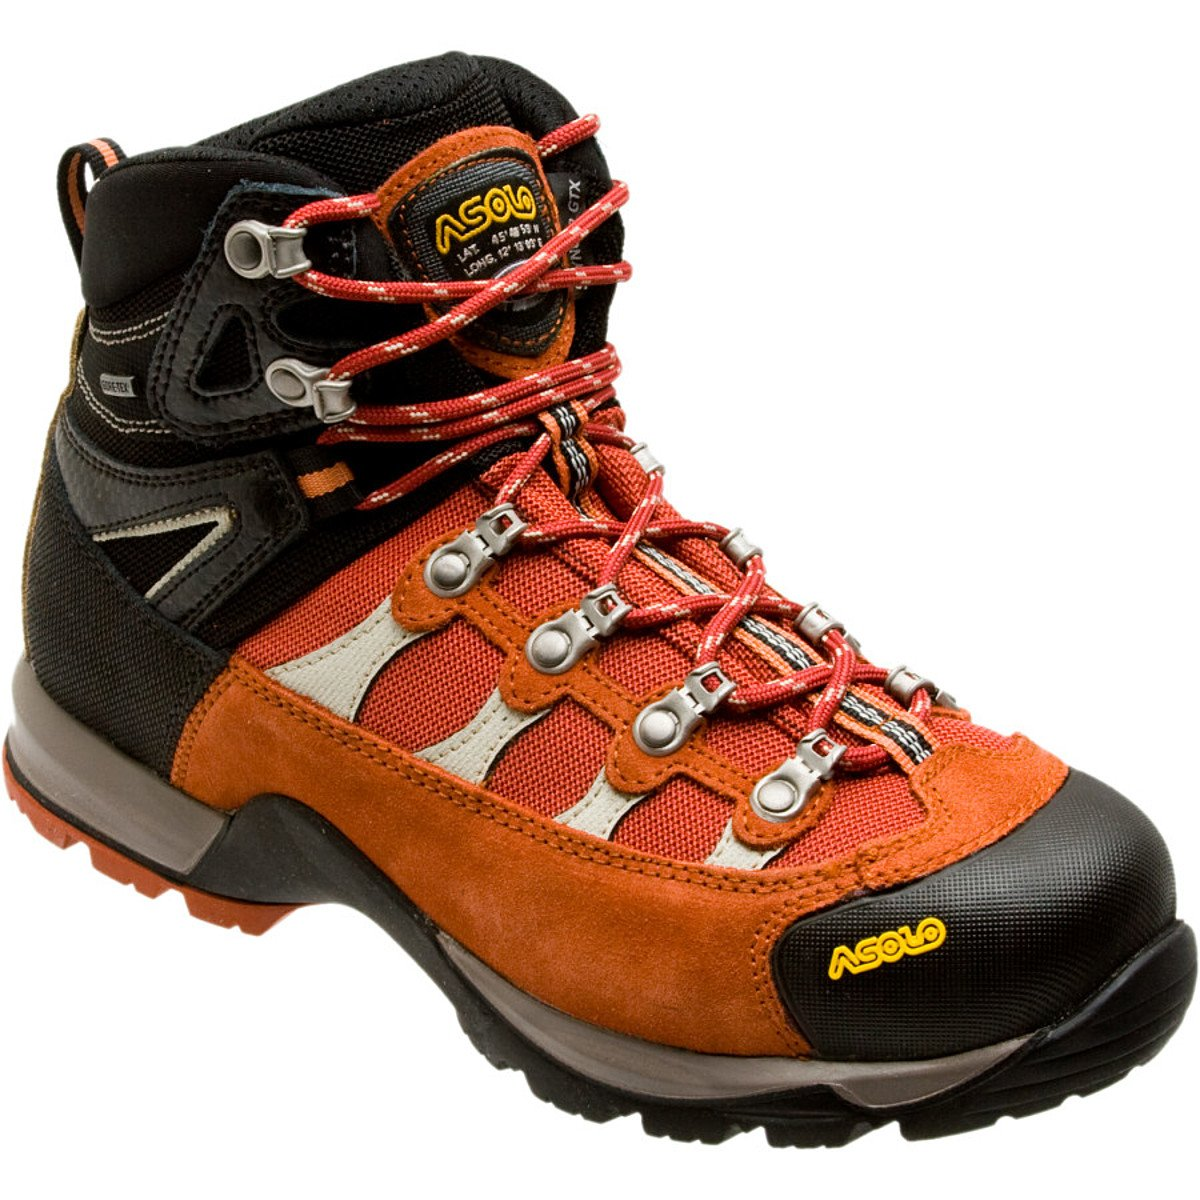 0M3453_791 Asolo Woman's Stynger GTX Hiking Boots - Centre Spice/Black 10.5 M US Asolo Hiking Boots 0M3453717